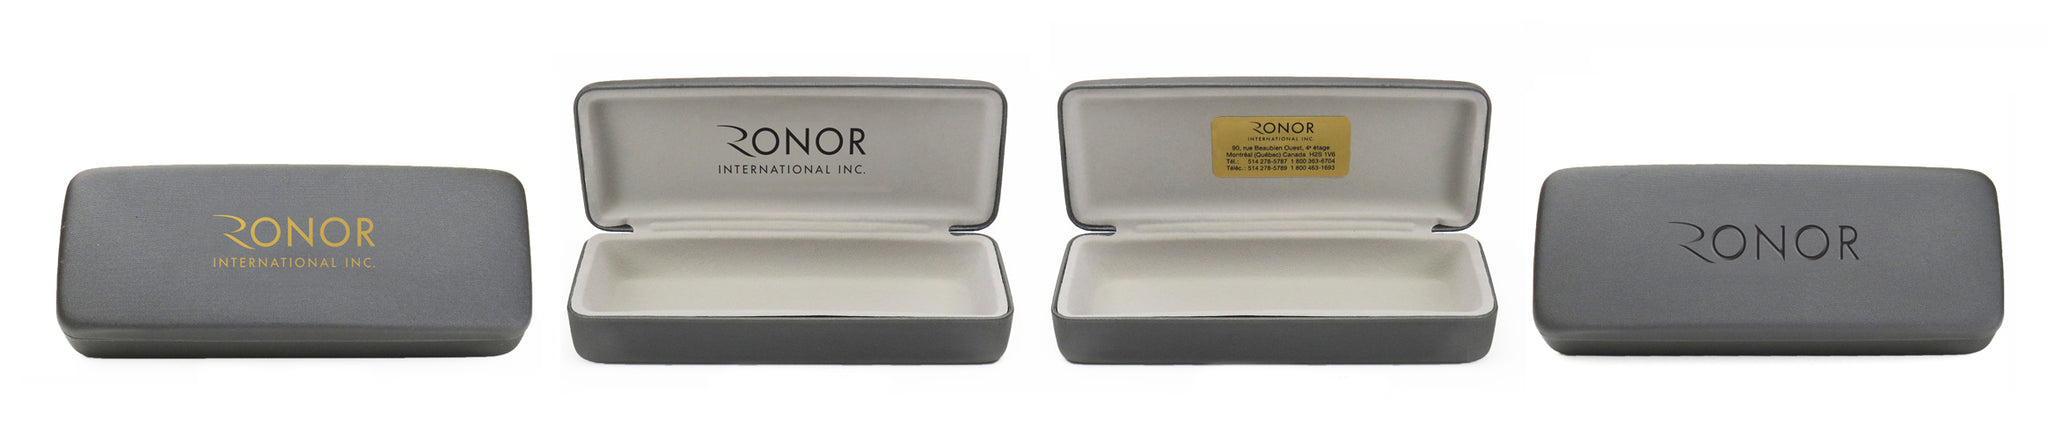 ronor-cases-personalization